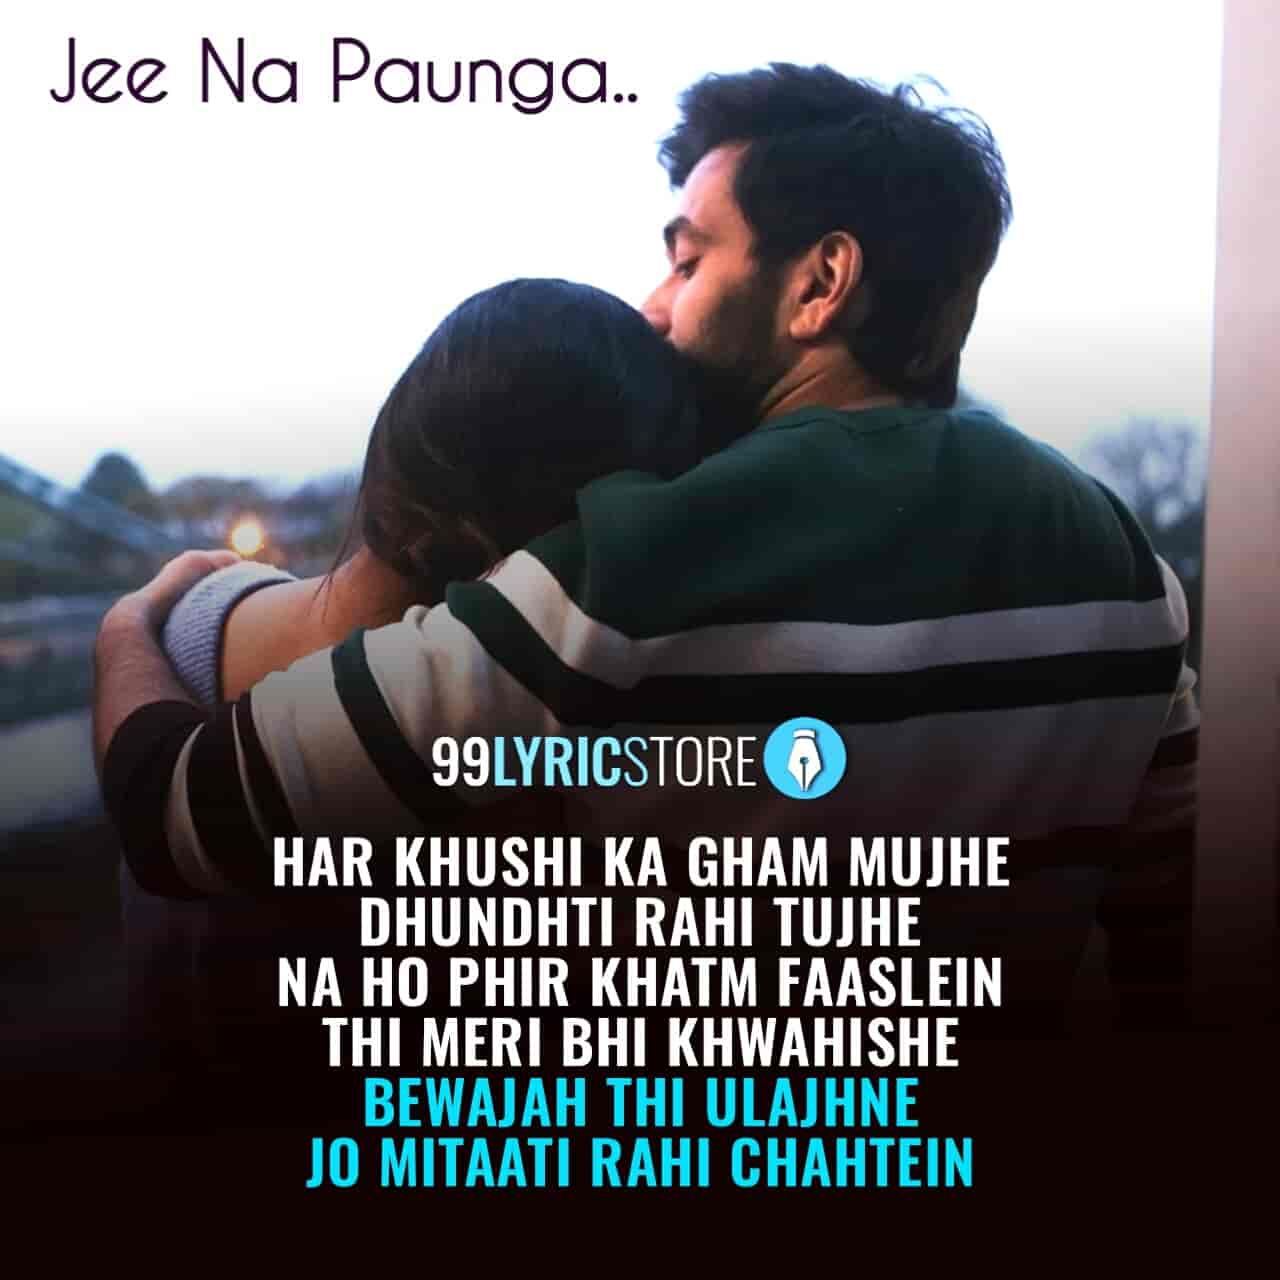 "This beautiful romantic song 'Jee Na Paunga' has sung by Vishal Mishra and Music of this song given are Vishal Mishra and Jaane Na Dunga Kahin song lyrics are penned by Jay Tanna ""Sifar"" and Vishal Mishra. This song is presented by Zee5 label."